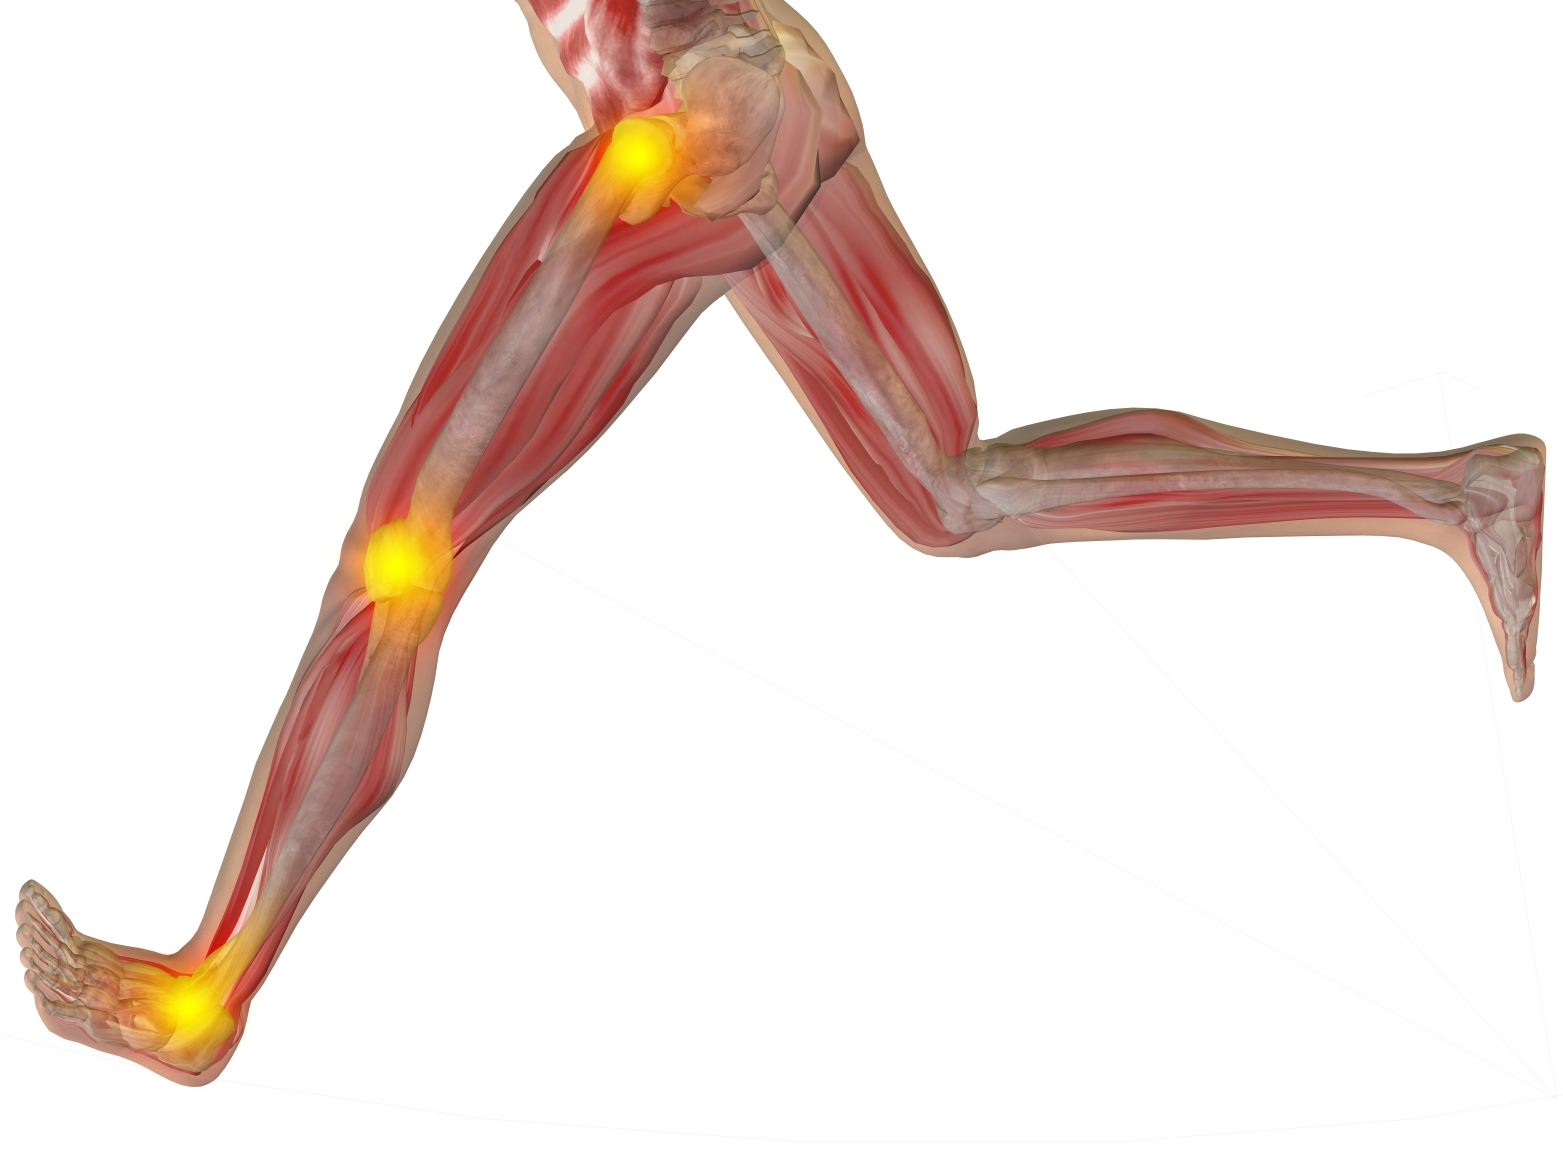 Runners Knee What Is It And Why Does It Hurt